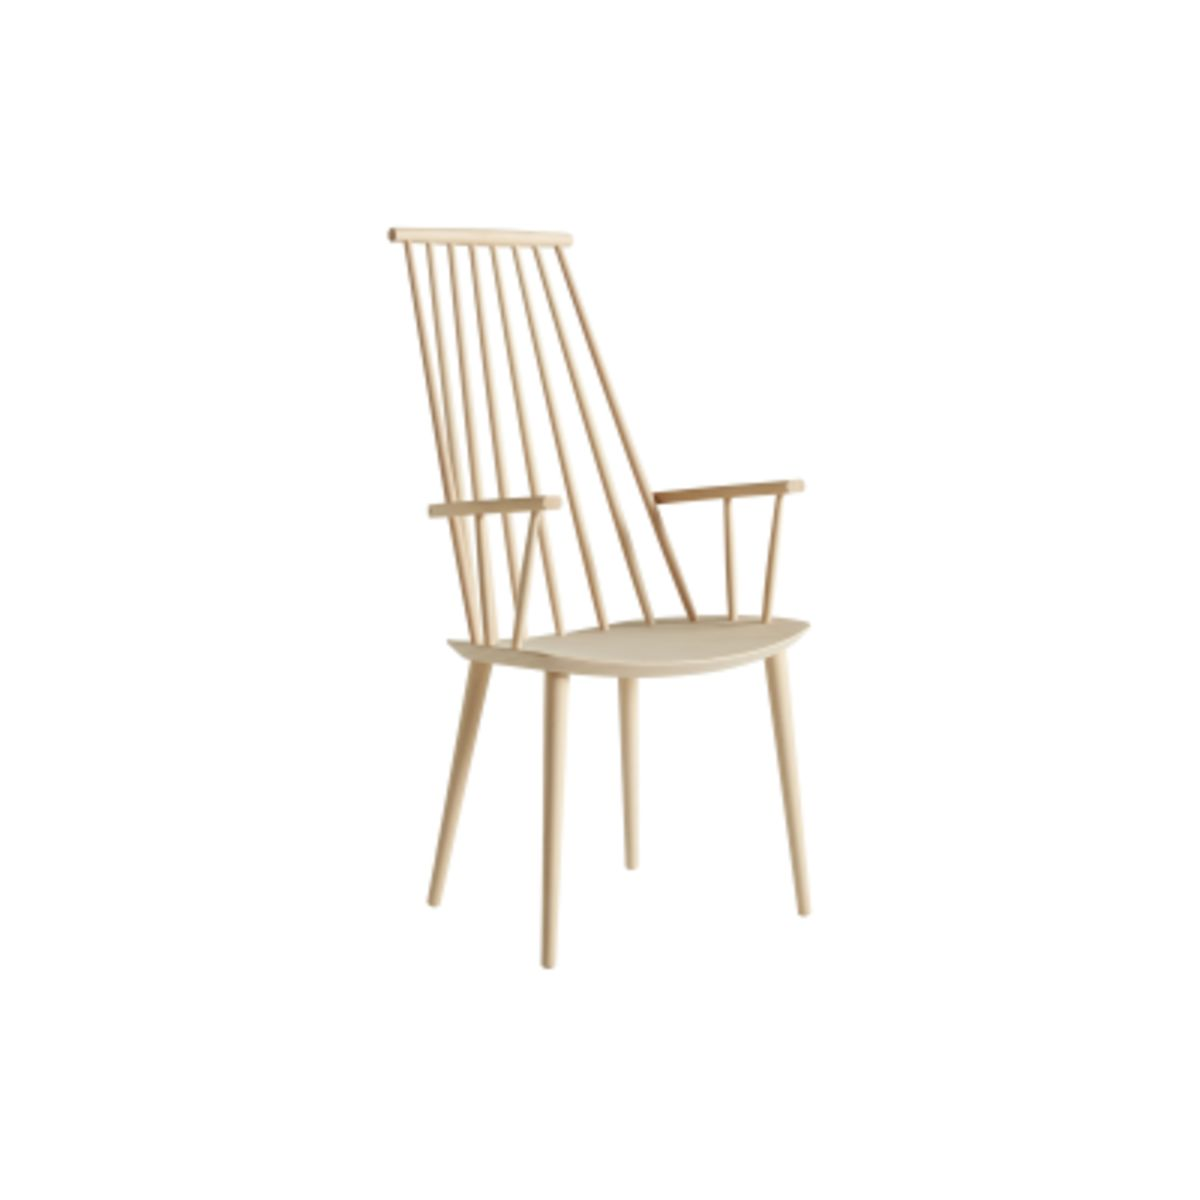 Remarkable J110 Dining Chair By Hay Dining Chairs By Clearance Dailytribune Chair Design For Home Dailytribuneorg